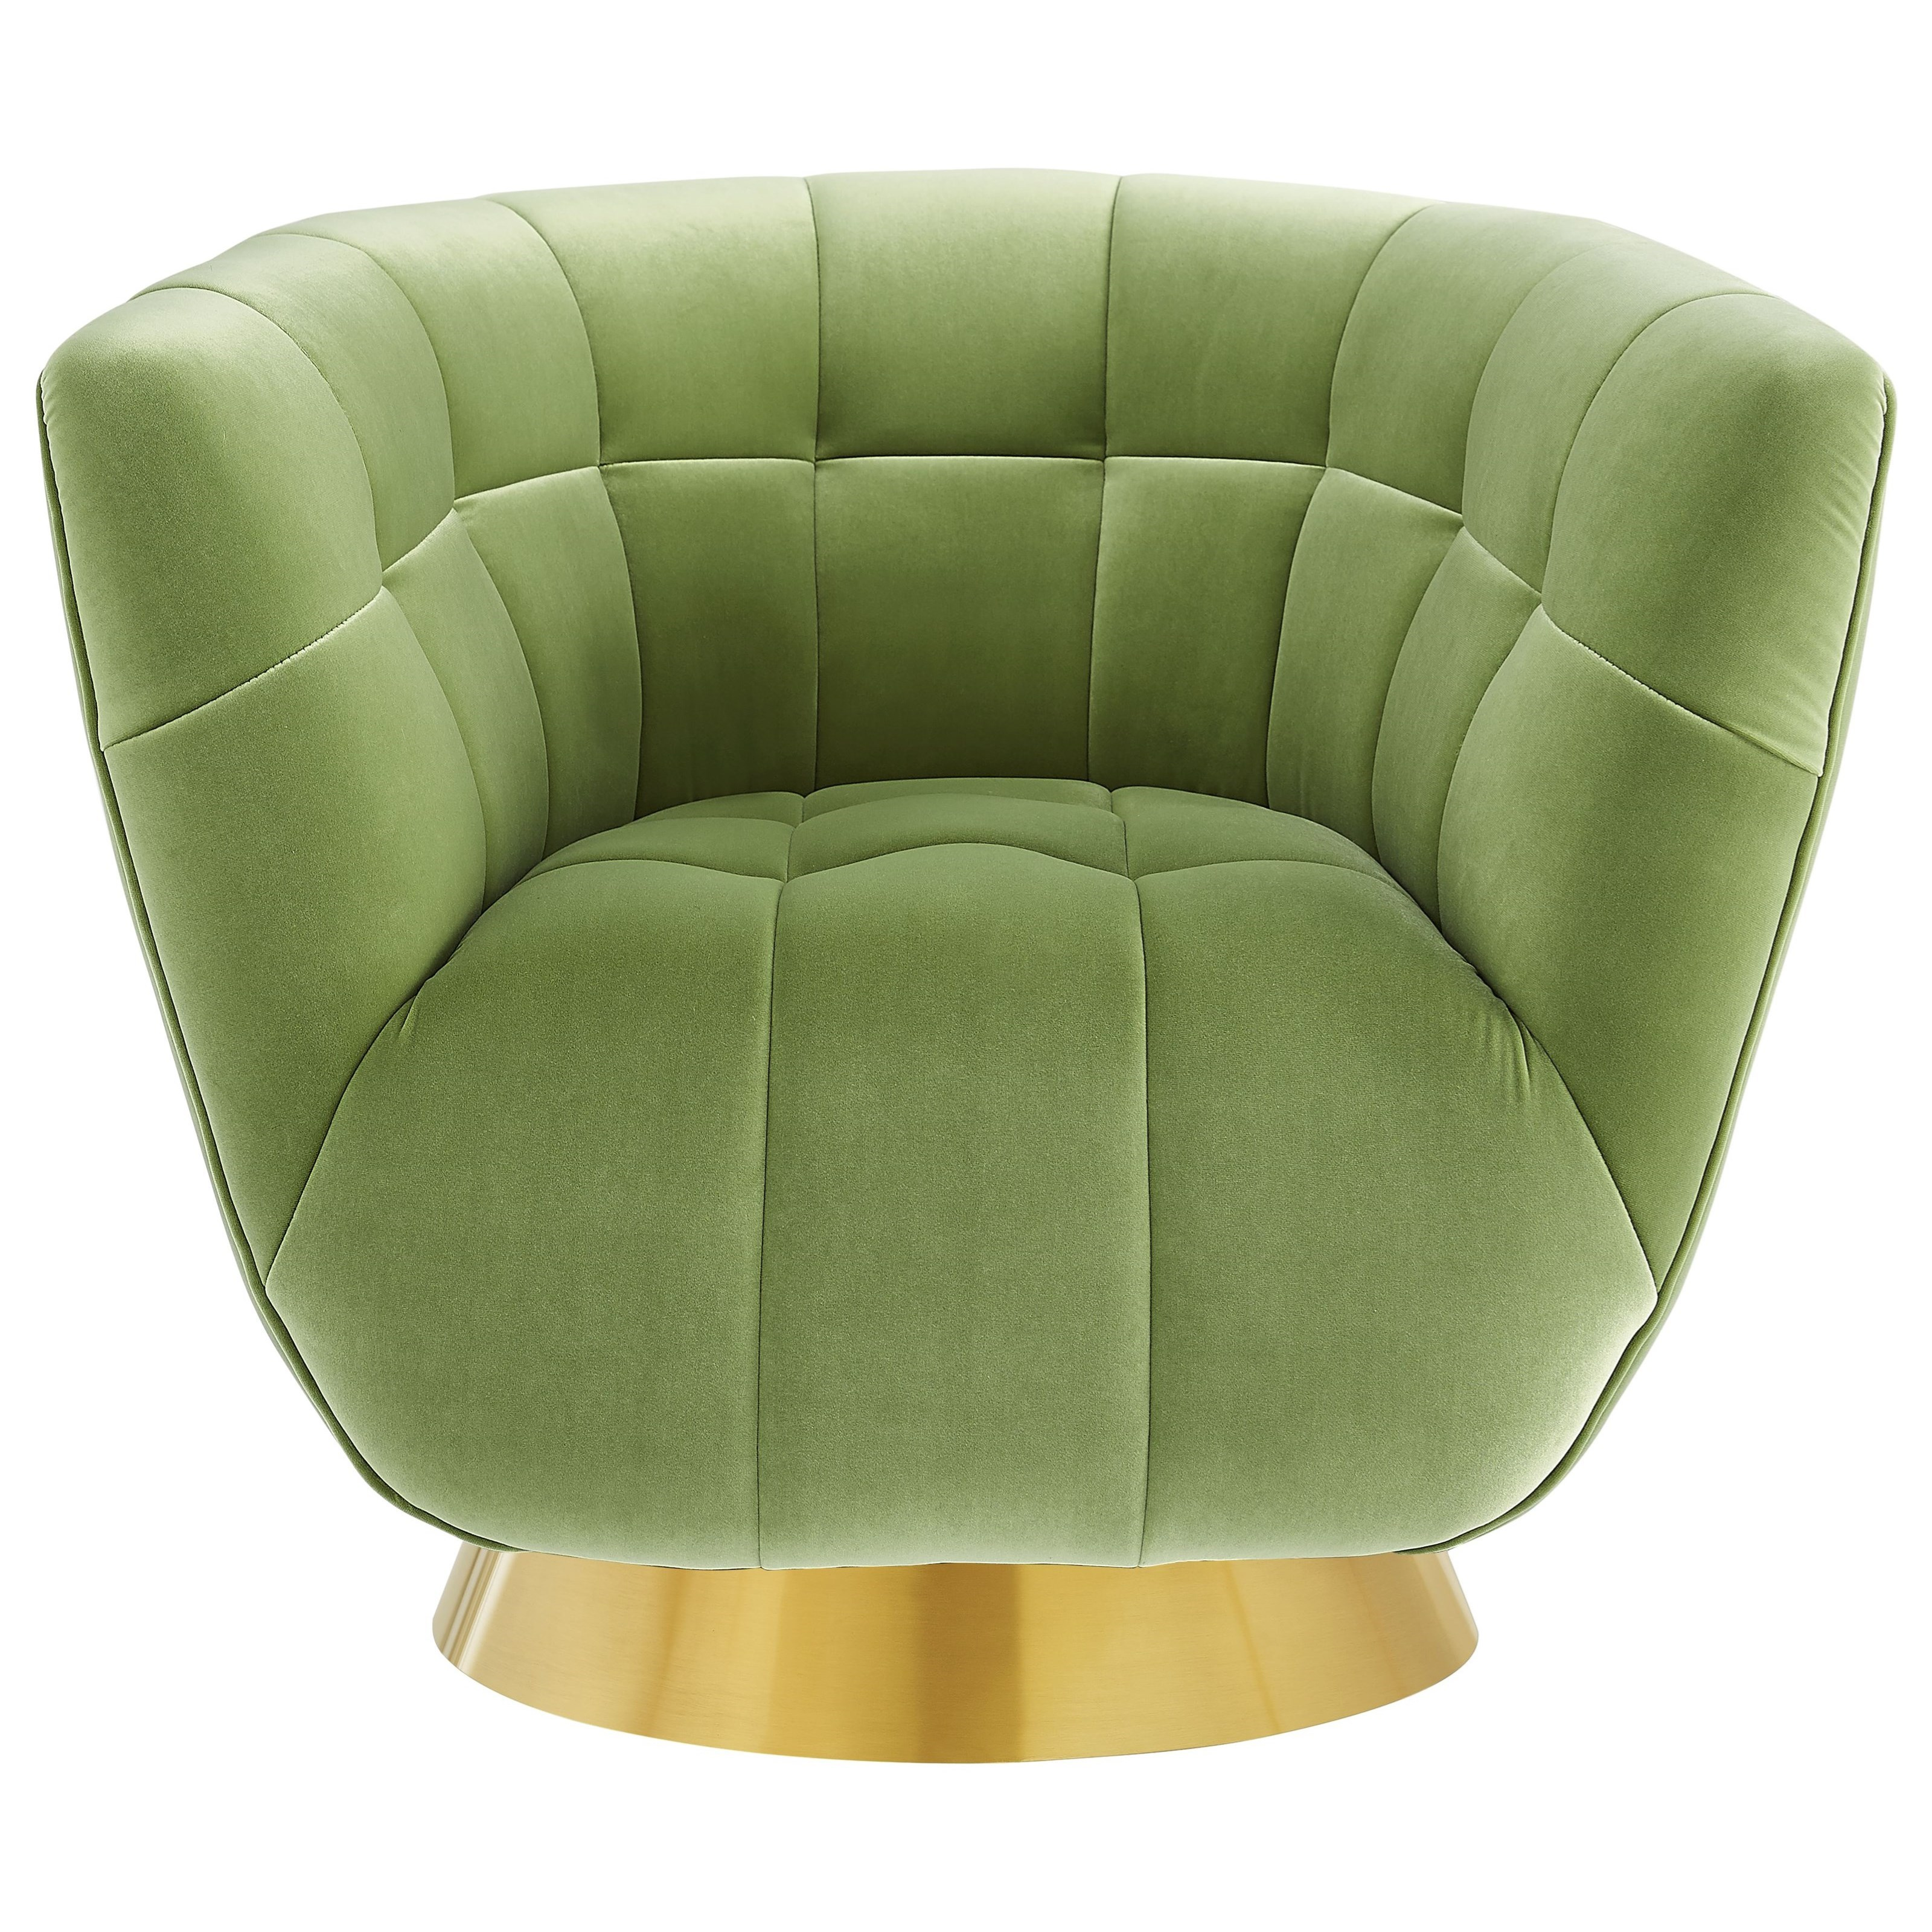 Hanna Velvet Swivel Chair by Steve Silver at Northeast Factory Direct